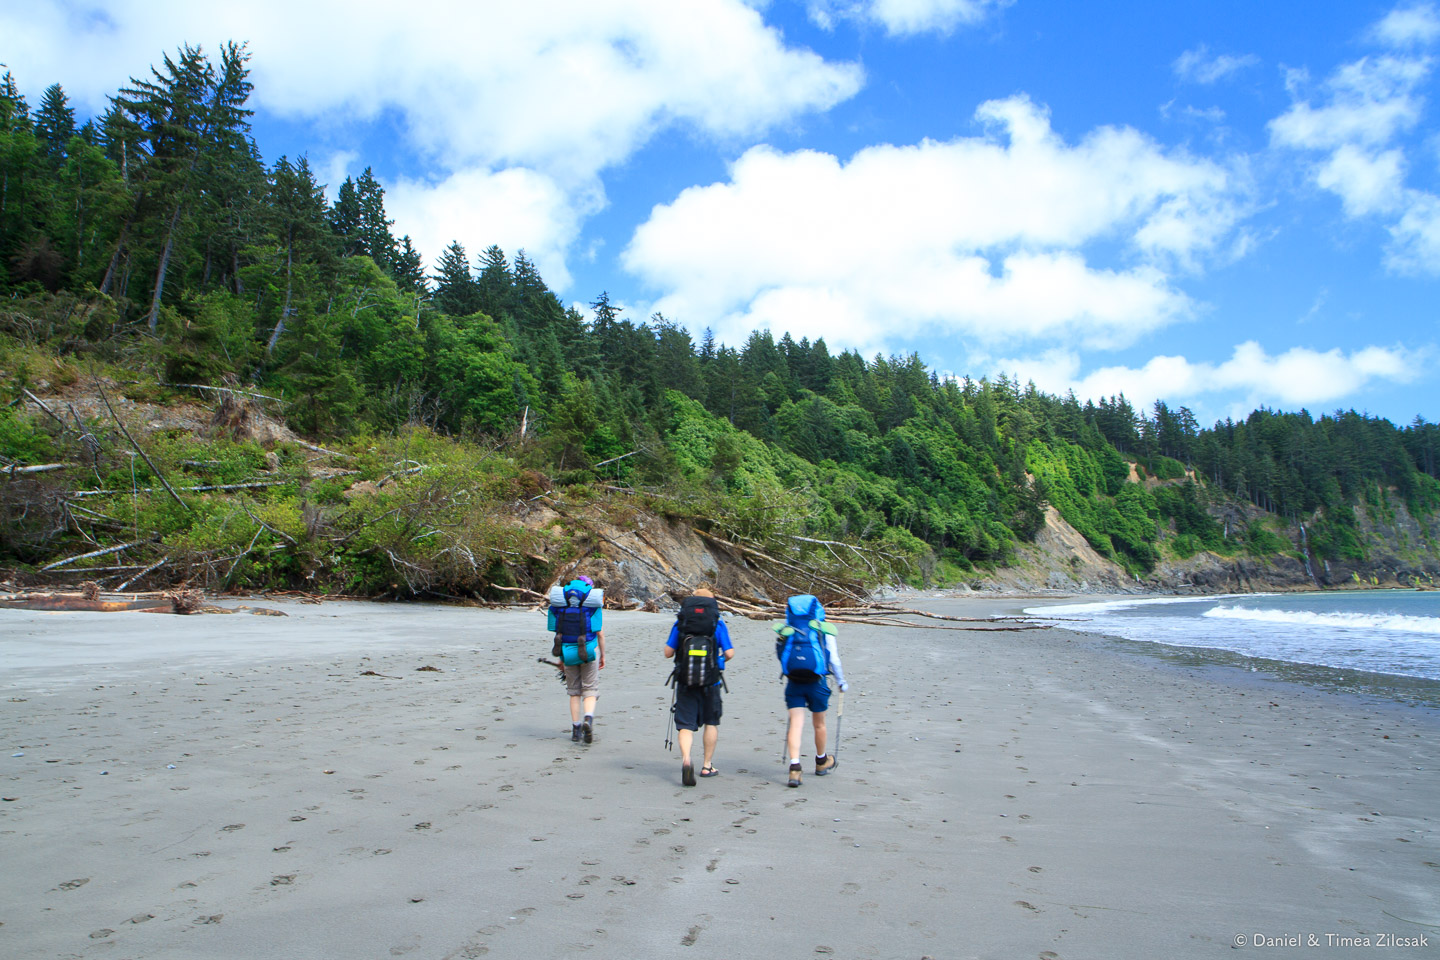 Land slide at Strawberry Bay - Backpacking the South Coast Wilderness Trail, Olympic National Park